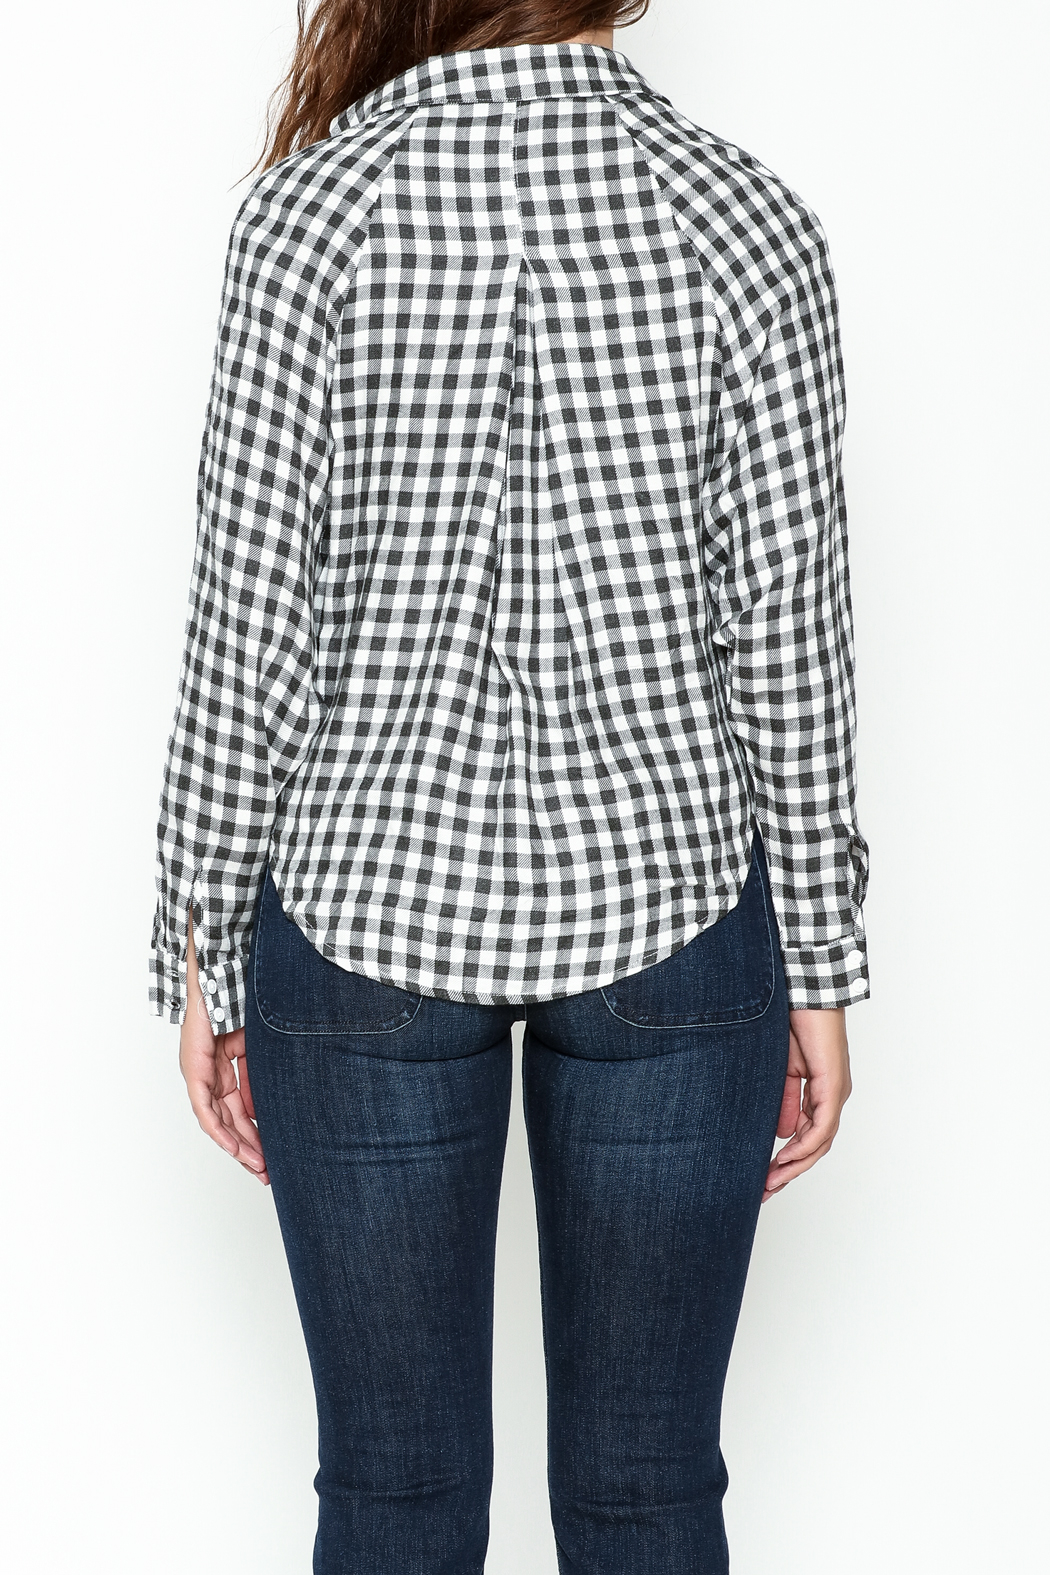 dress forum Checkered Knot Shirt - Back Cropped Image